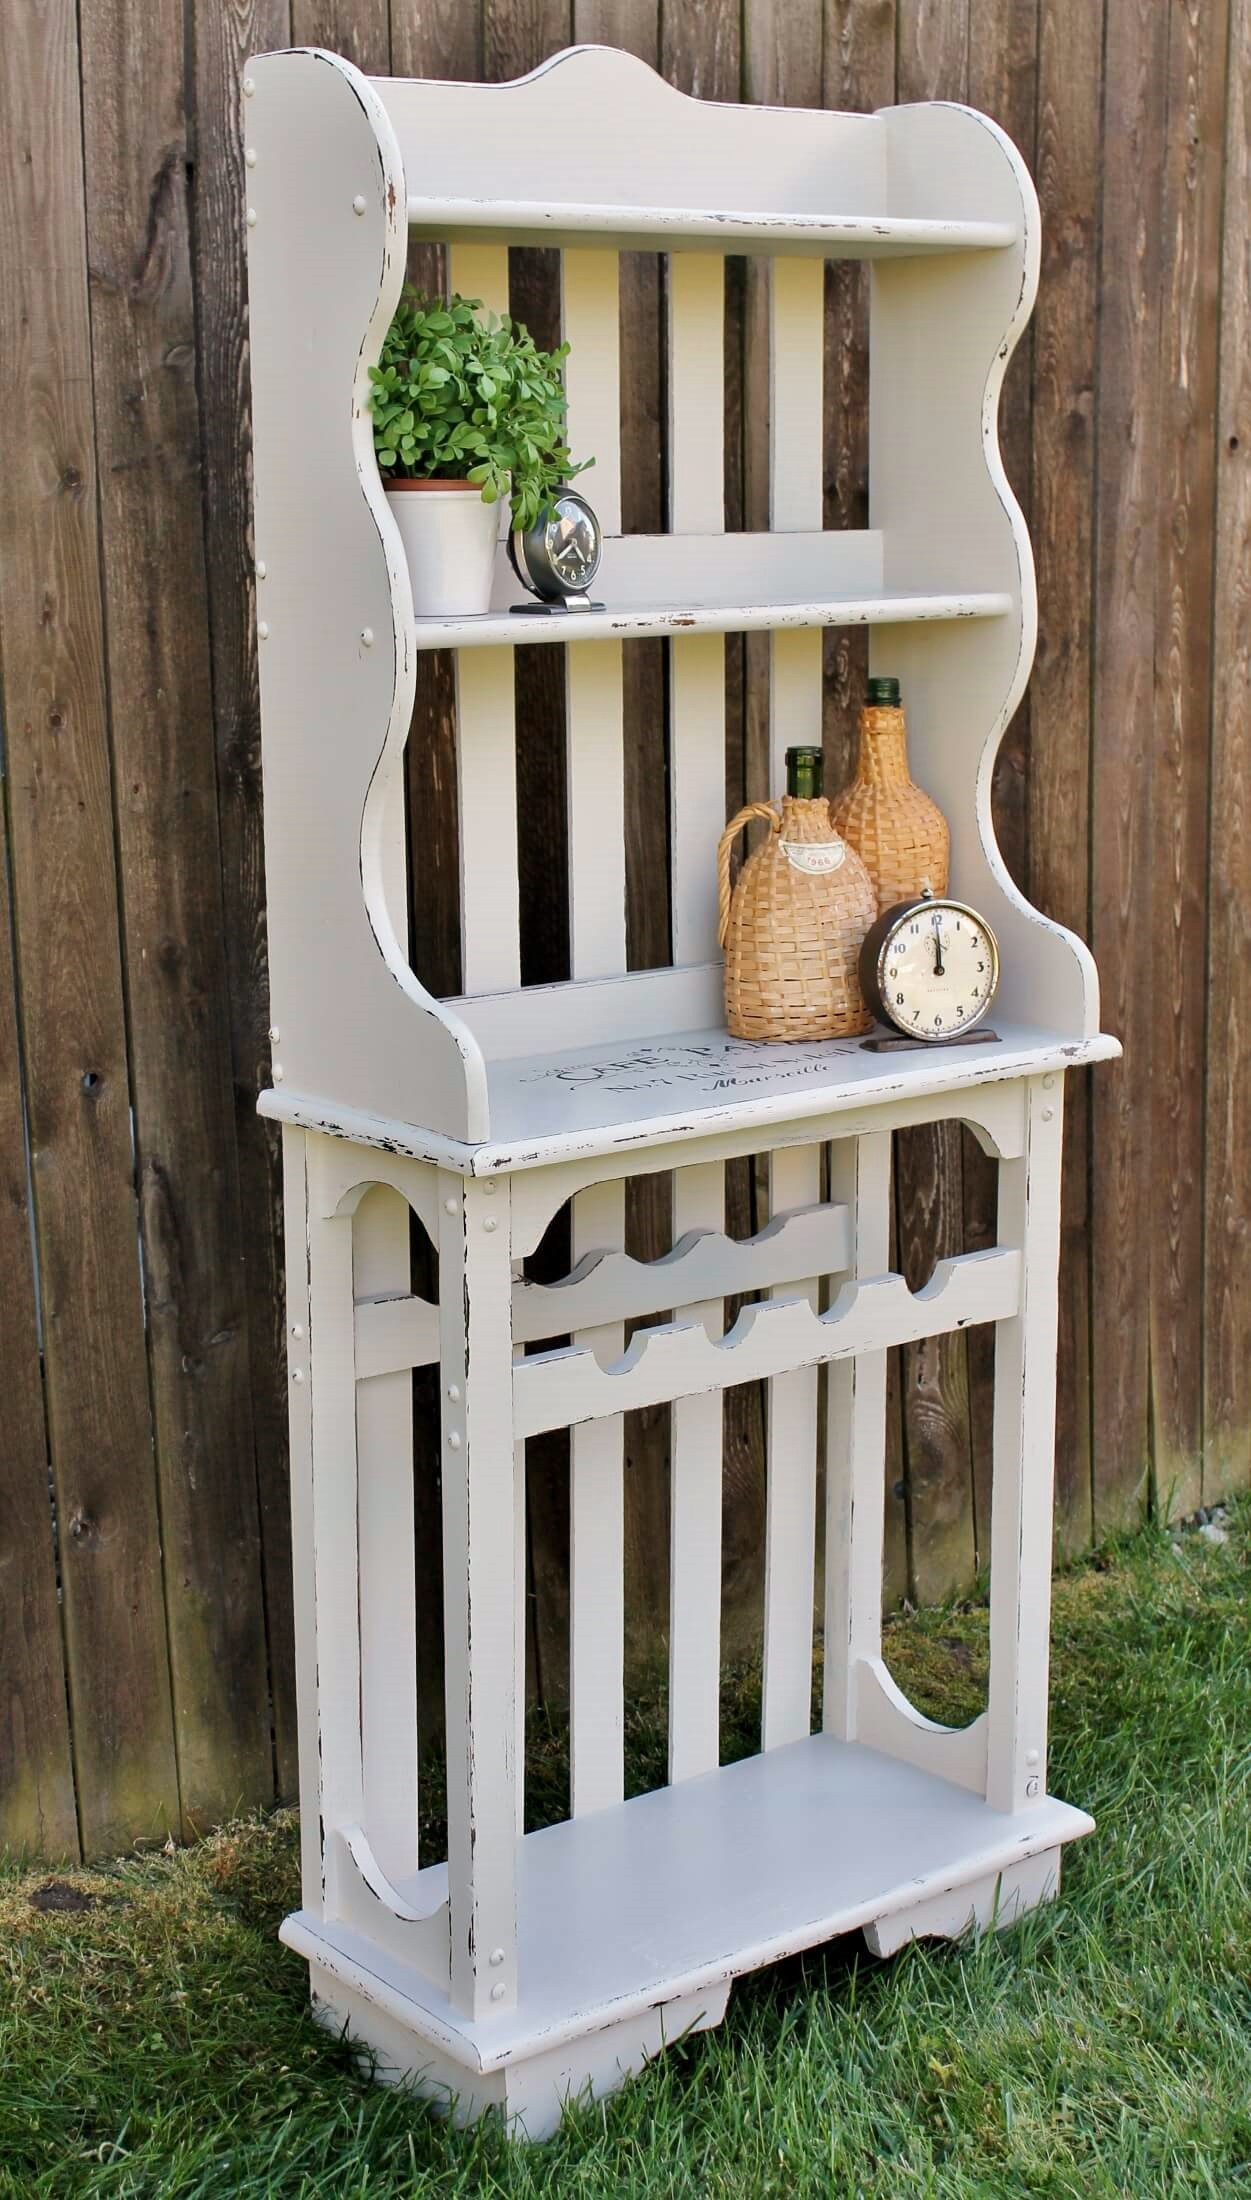 This thrift store find with a fresh coat of paint looks farmhouse chic and simple.